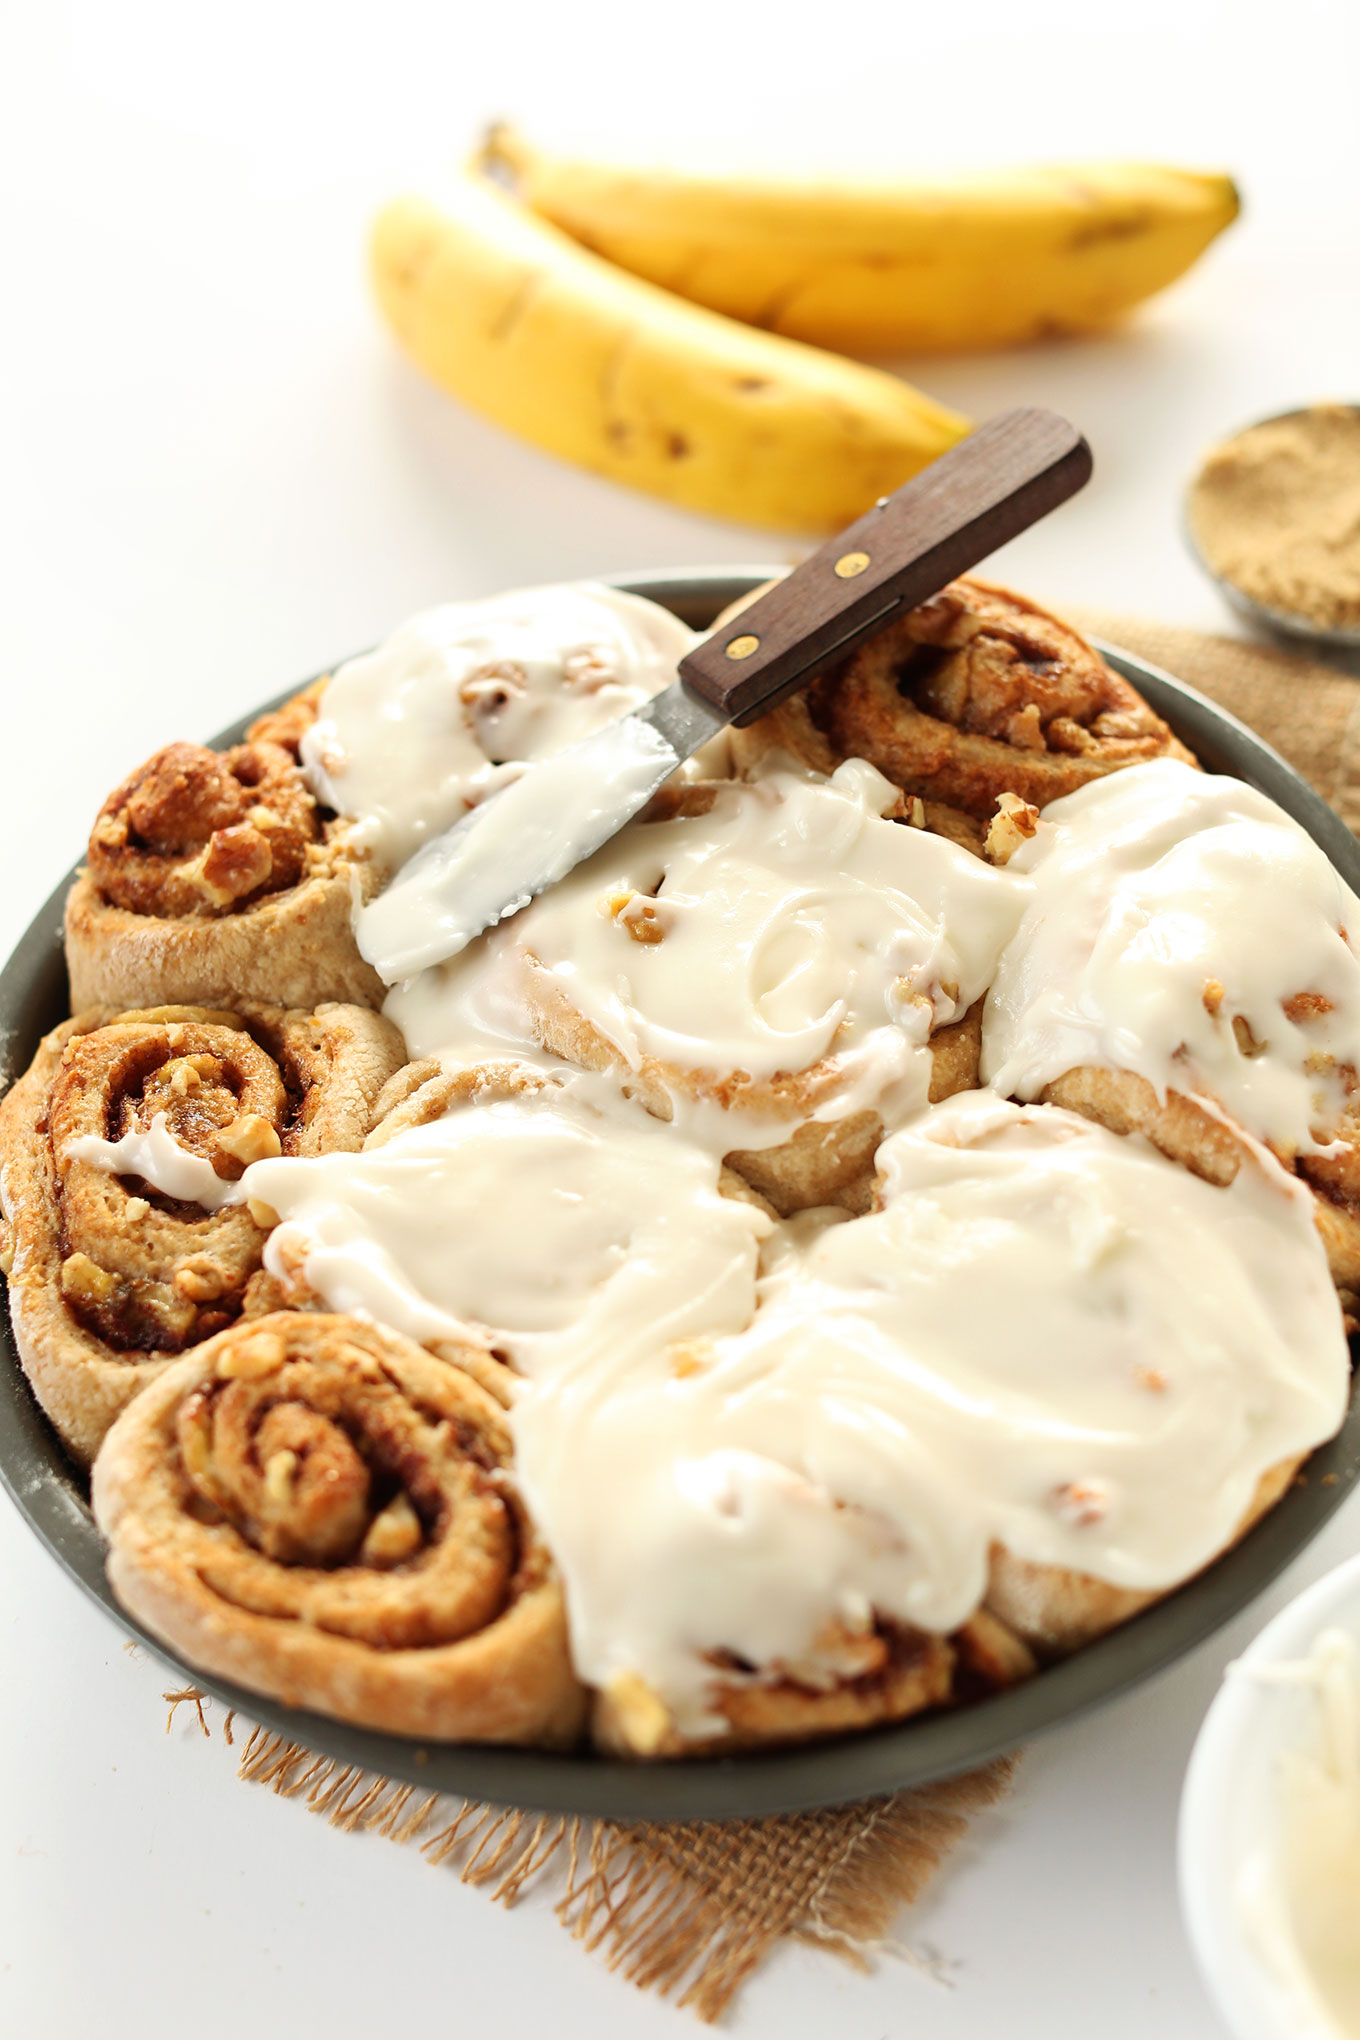 Spreading icing over a batch of freshly baked Vegan Banana Bread Cinnamon Rolls